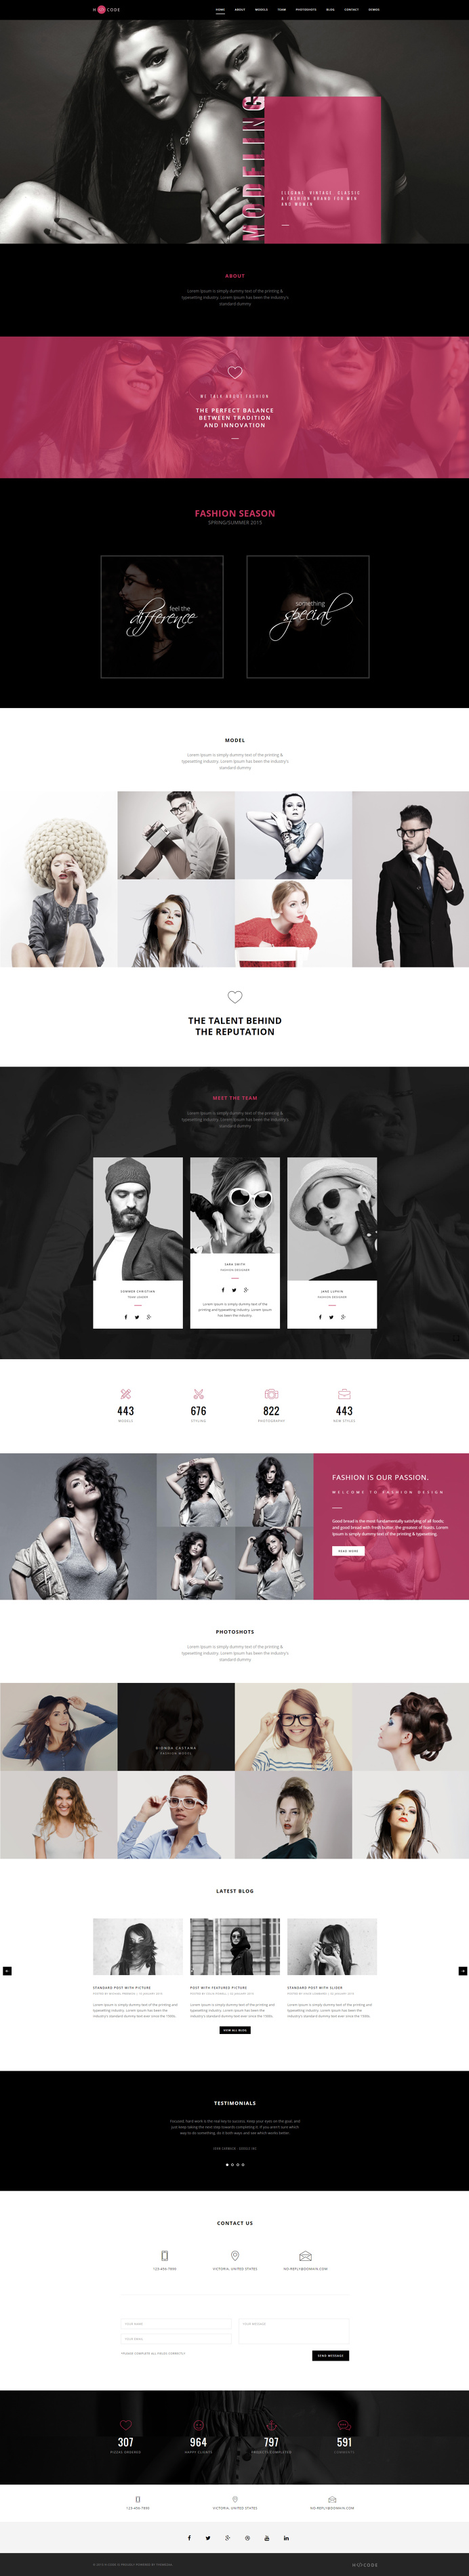 H-Code #Responsive & #Multipurpose #OnePage and #MultiPage #Template For #Fashion by #ThemeZaa http://goo.gl/ygs4kX